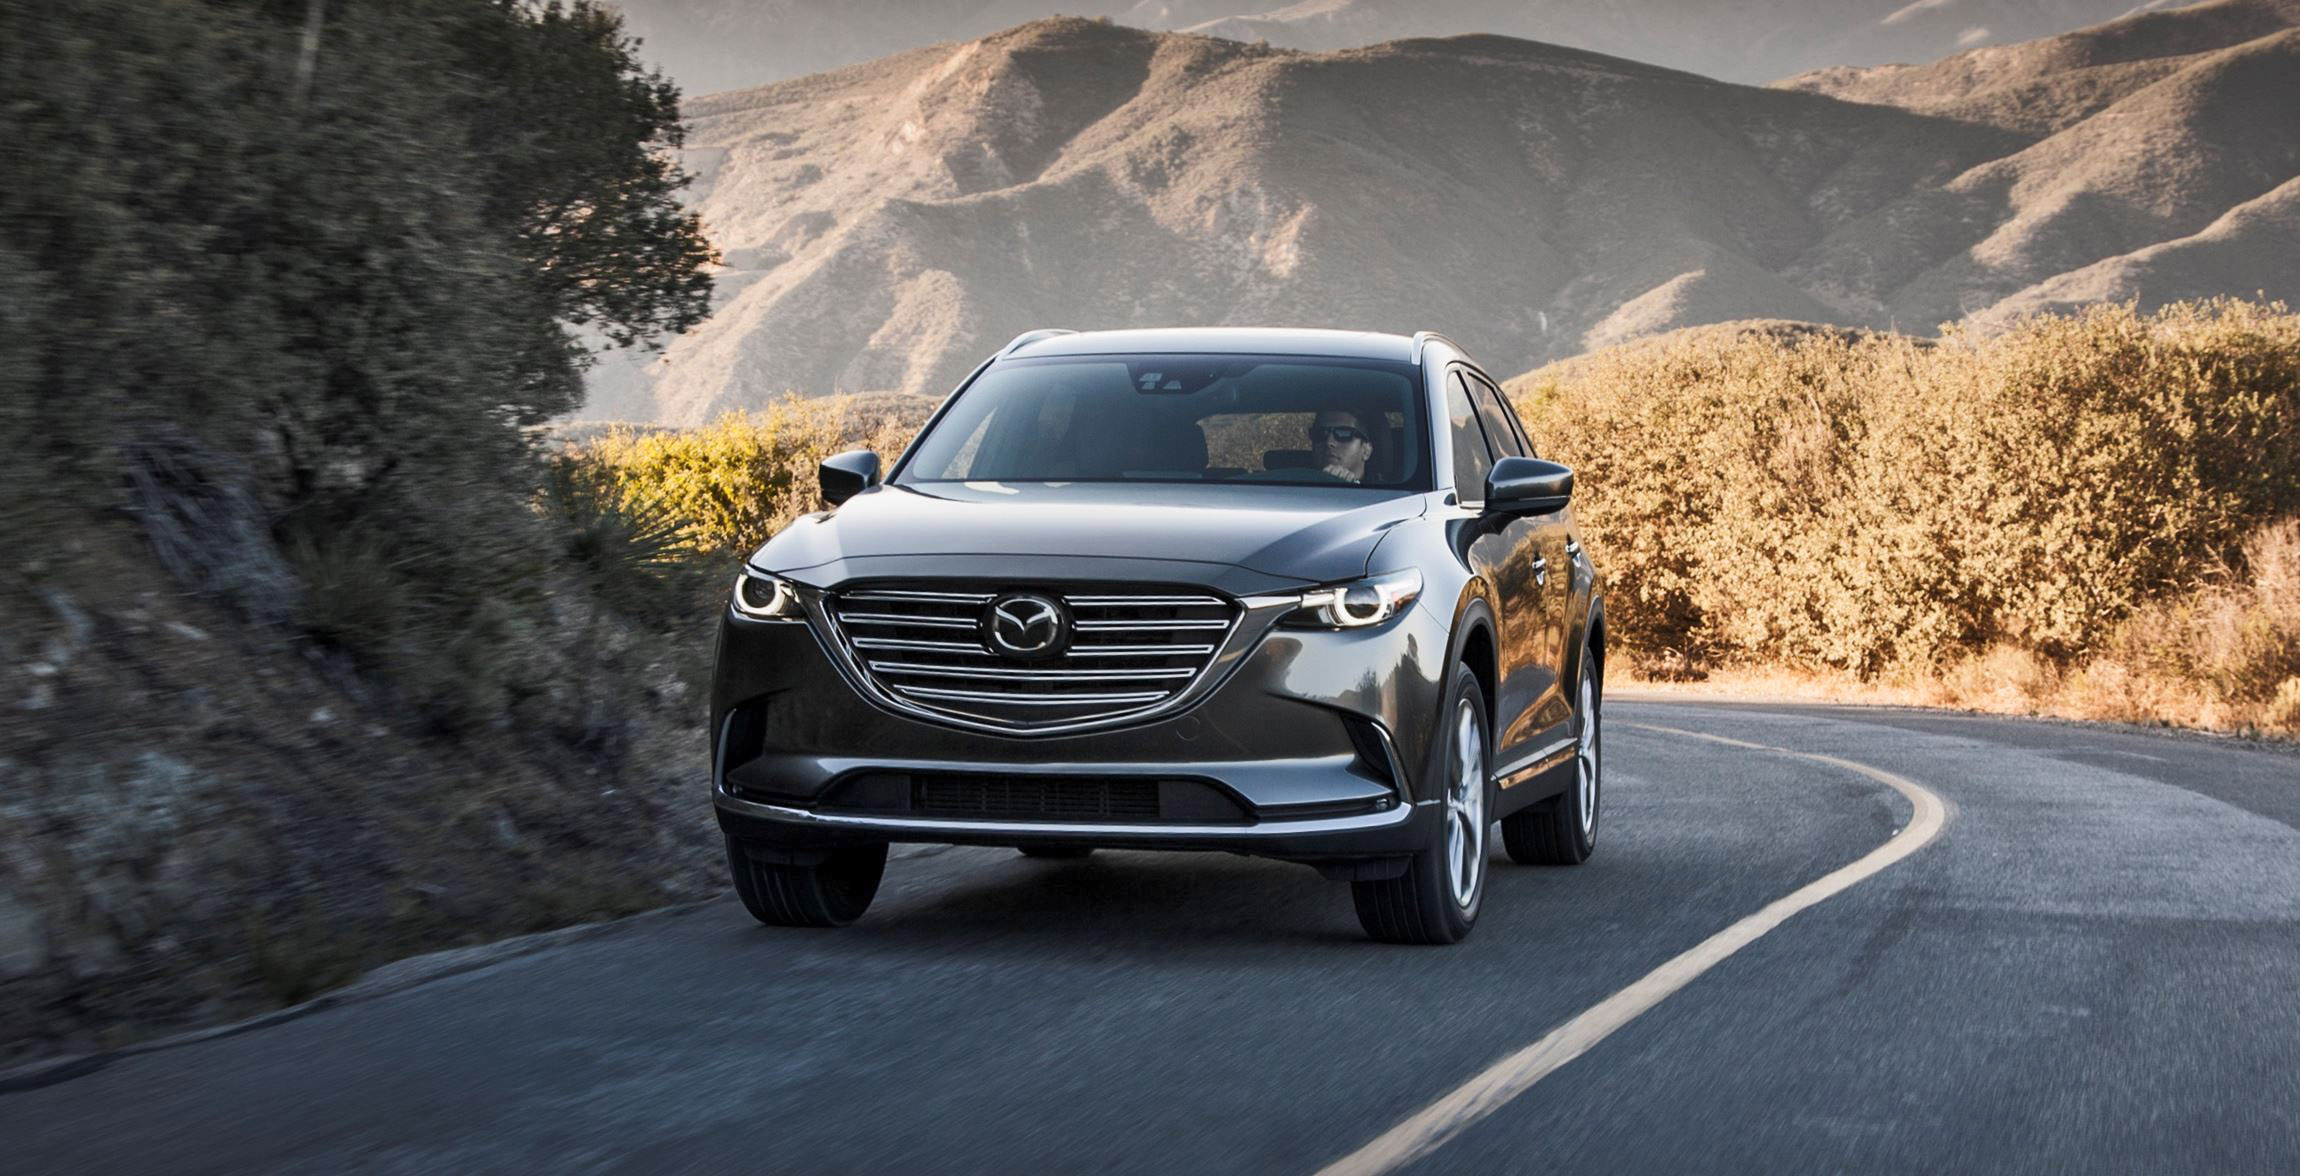 2017 Mazda CX 9 Revealed Gorgeous Redesign Lux Cabin And